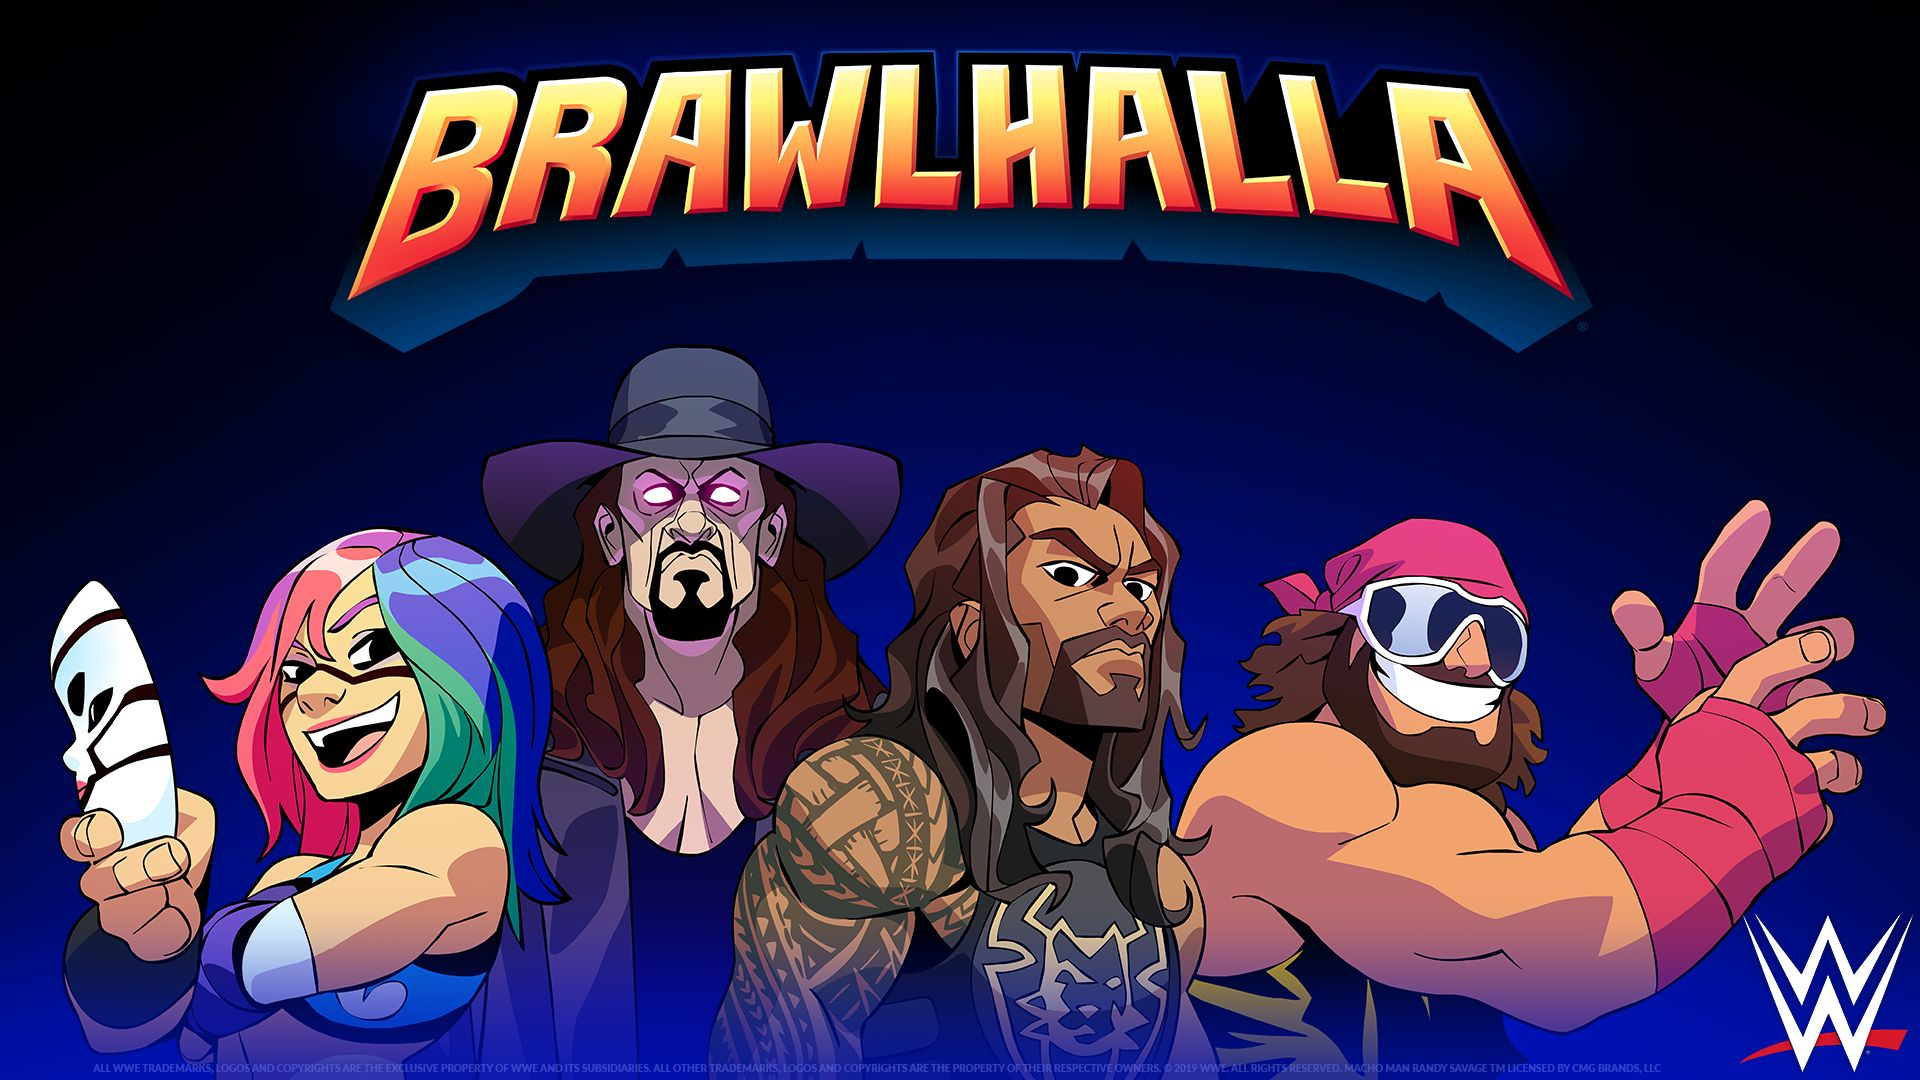 Four Wwe Superstars Are Now Added To Brawlhalla